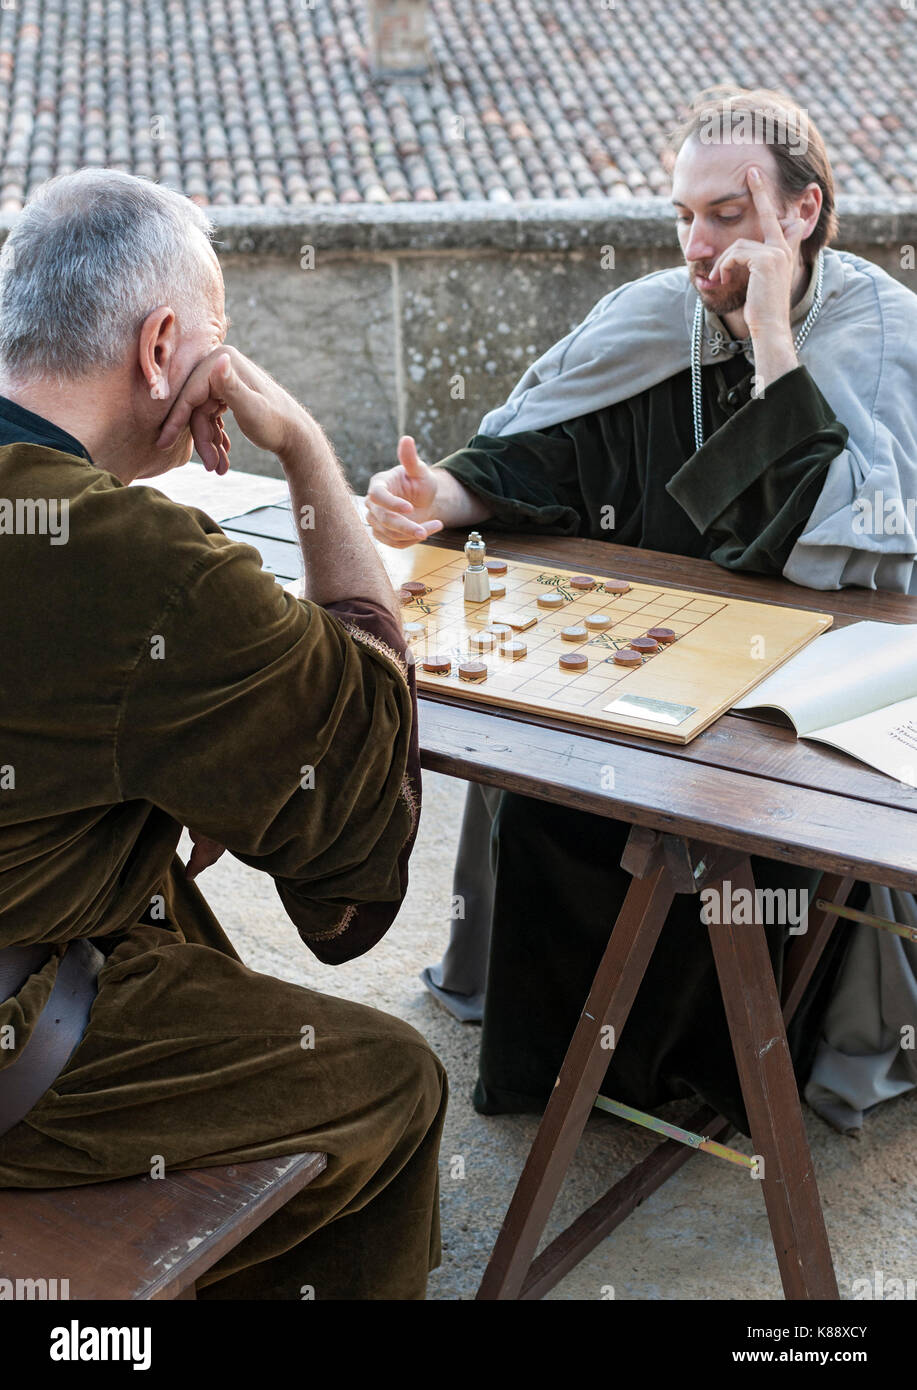 Two men in period costumes playing a board game during the annual Medieval Days Festival held in San Marino. - Stock Image